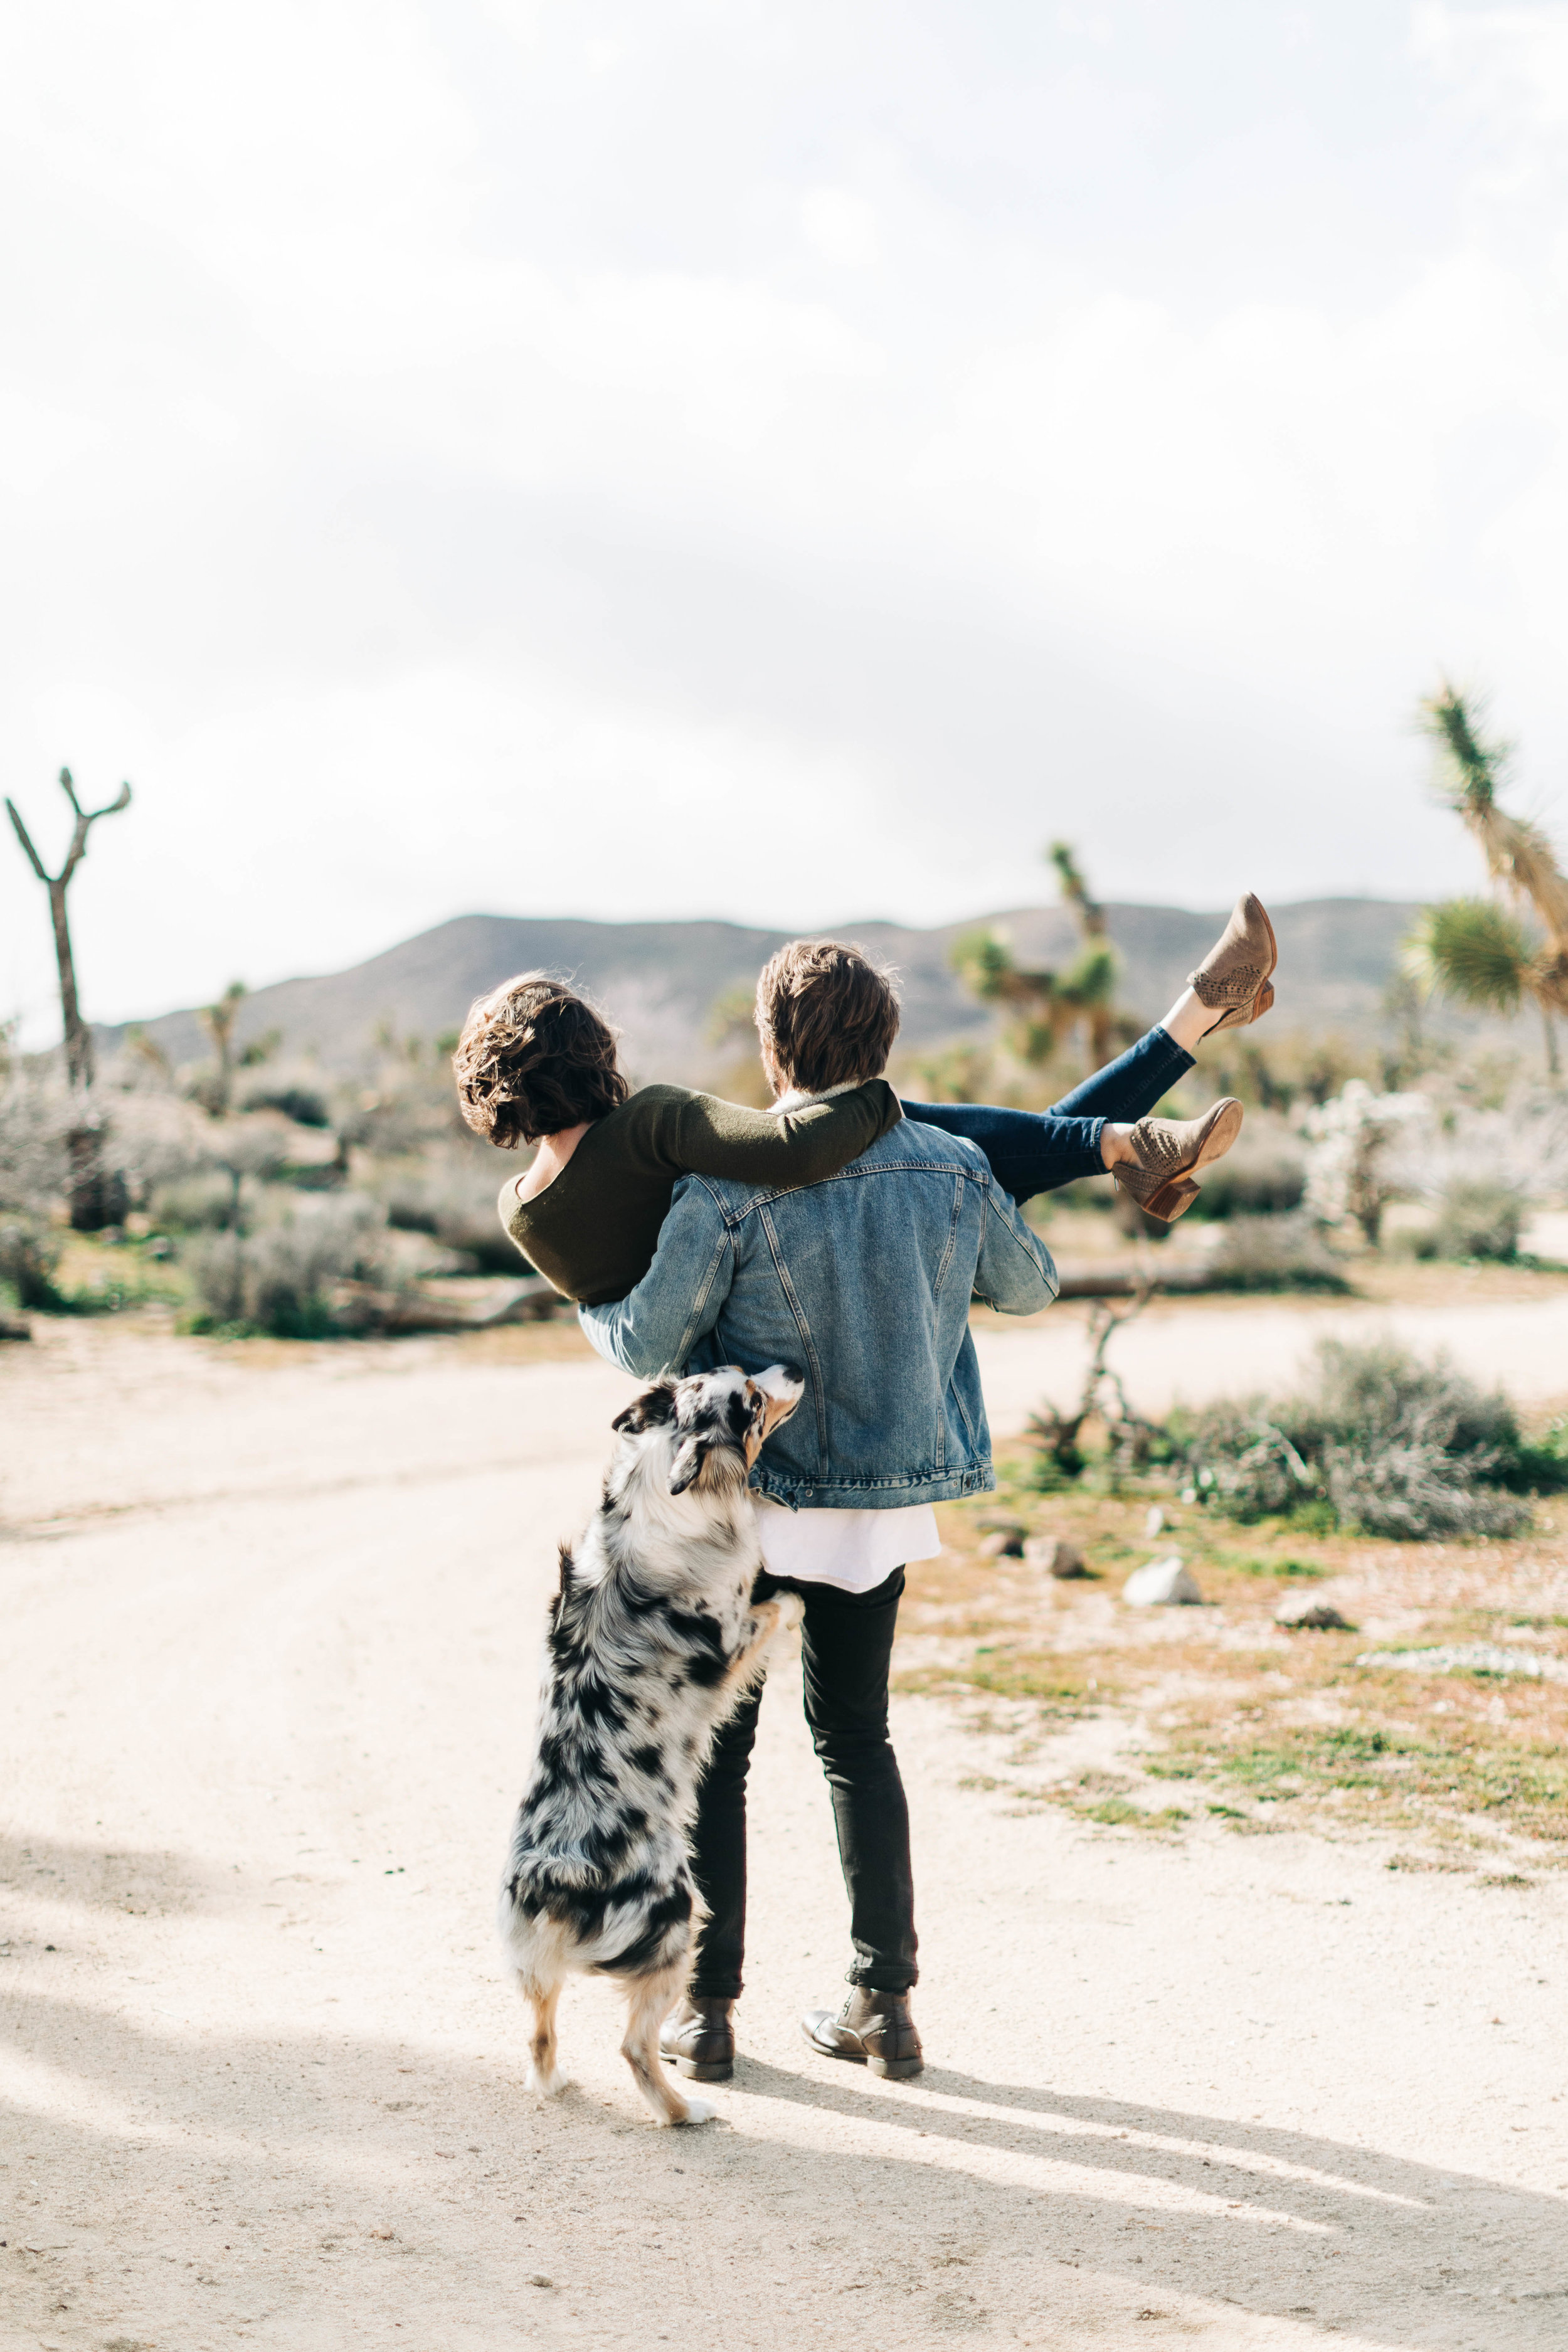 Hayley&Boomer_Joshua-Tree-Engagement-Photos_Tiny-Home_Southern-California-Wedding-Photographer_42